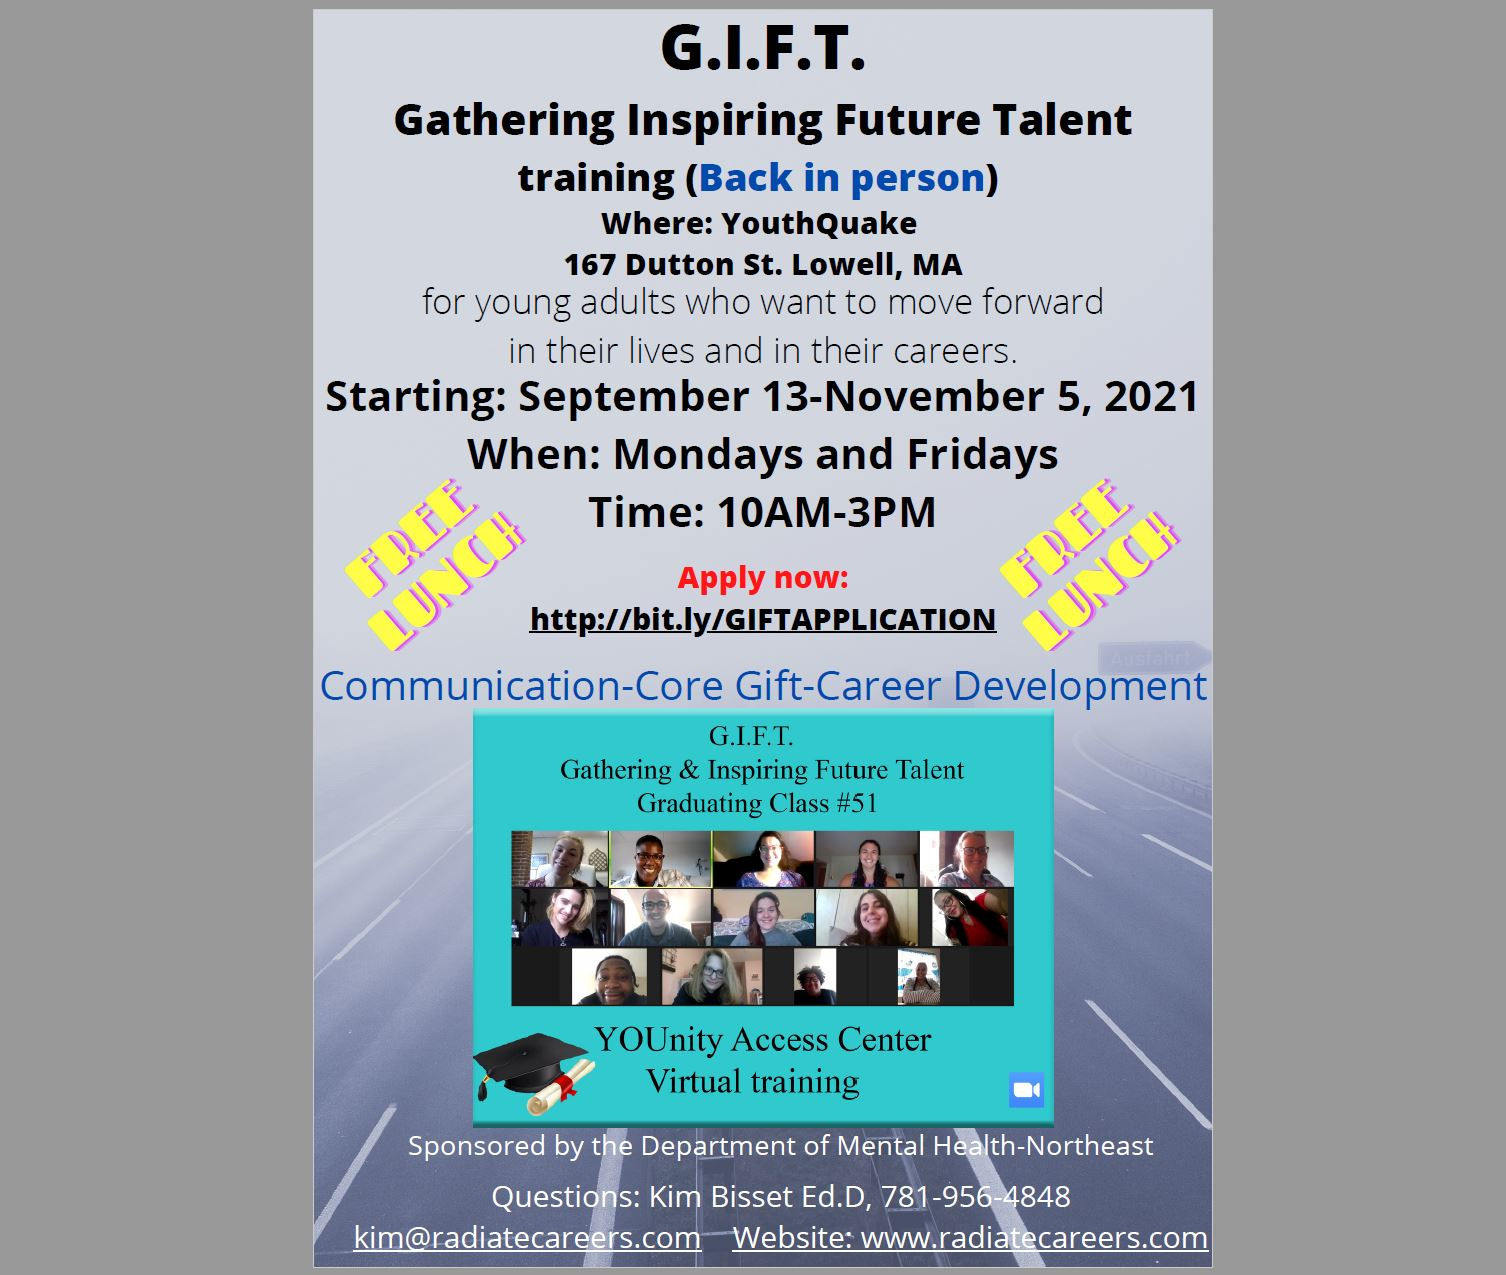 G.I.F.T. (Gathering & Inspiring Future Talent) Training: IN-PERSON at YouthQuake in Lowell - Starting Sept.13, 2021